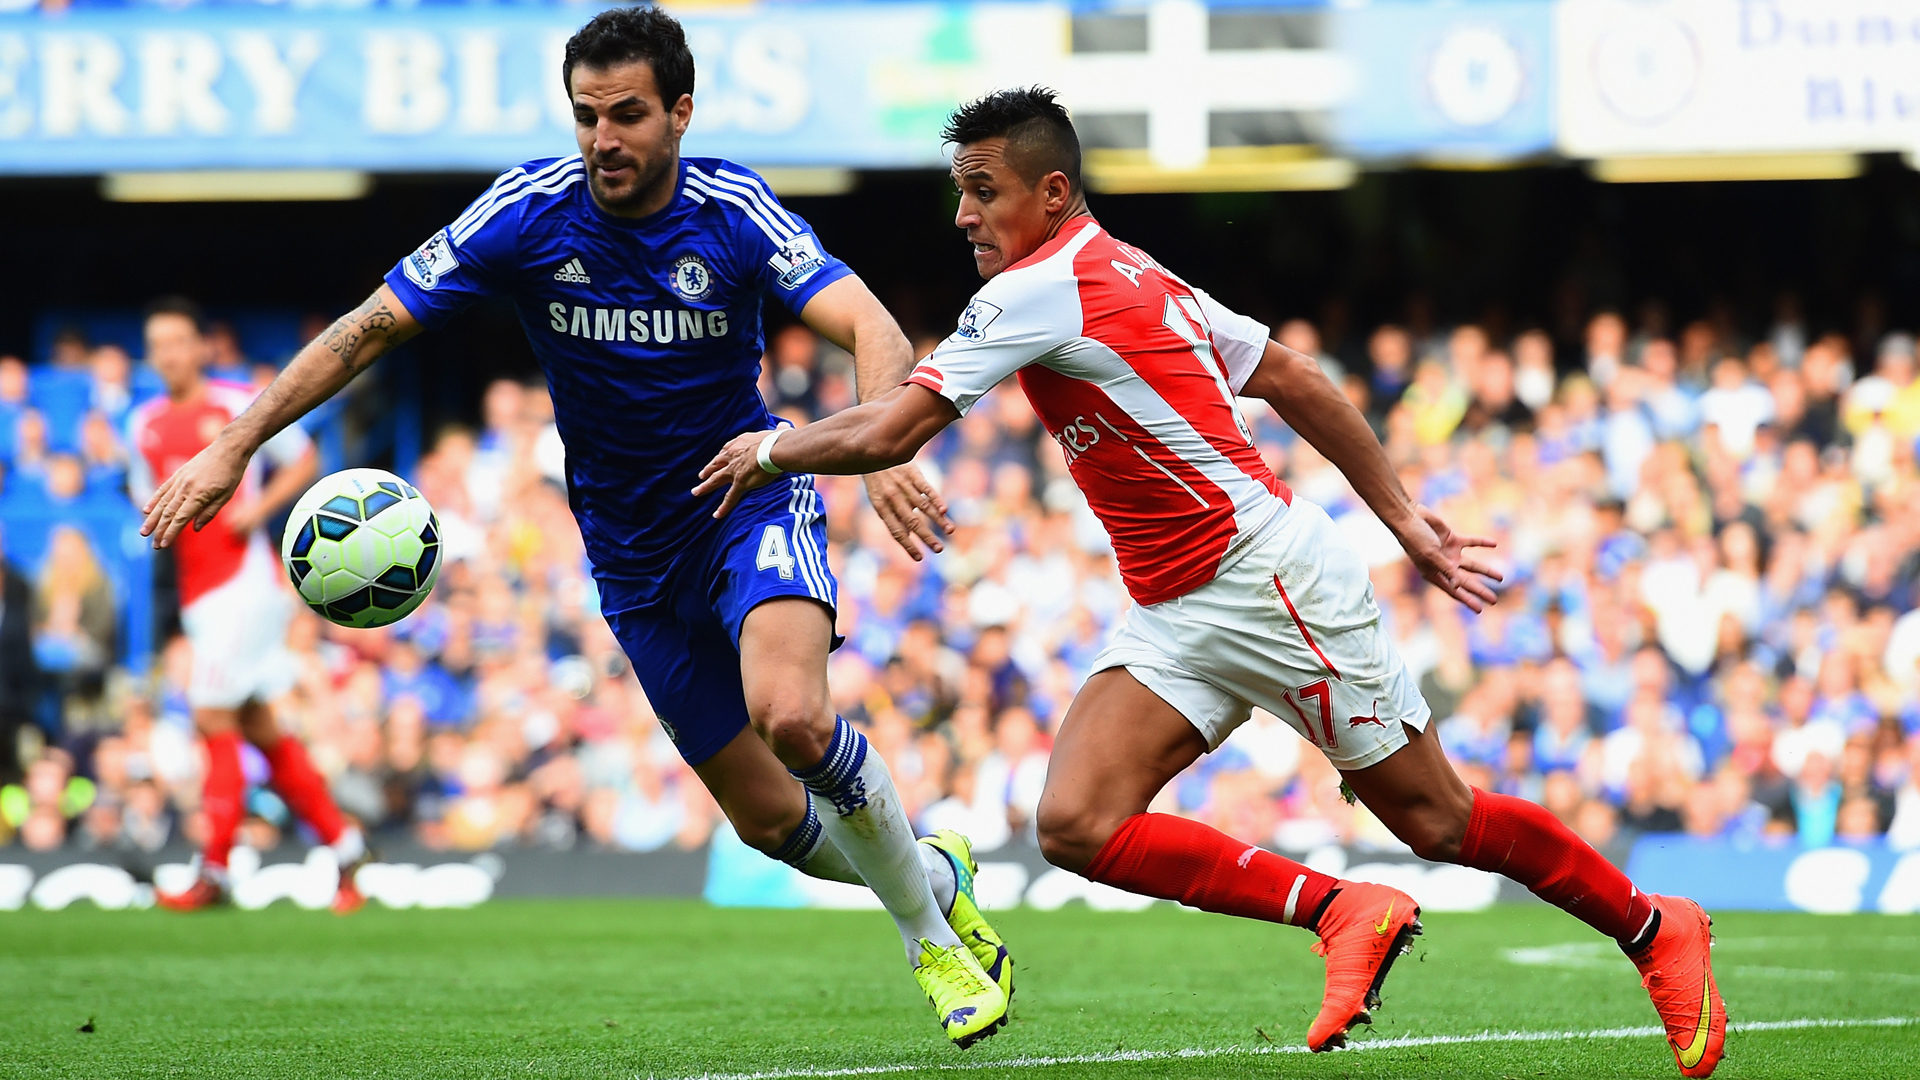 LONDON, ENGLAND - OCTOBER 05:  Cesc Fabregas of Chelsea and Alexis Sanchez of Arsenal battle for the ball during the Barclays Premier League match between Chelsea and Arsenal at Stamford Bridge on October 4, 2014 in London, England.  (Photo by Shaun Botterill/Getty Images)